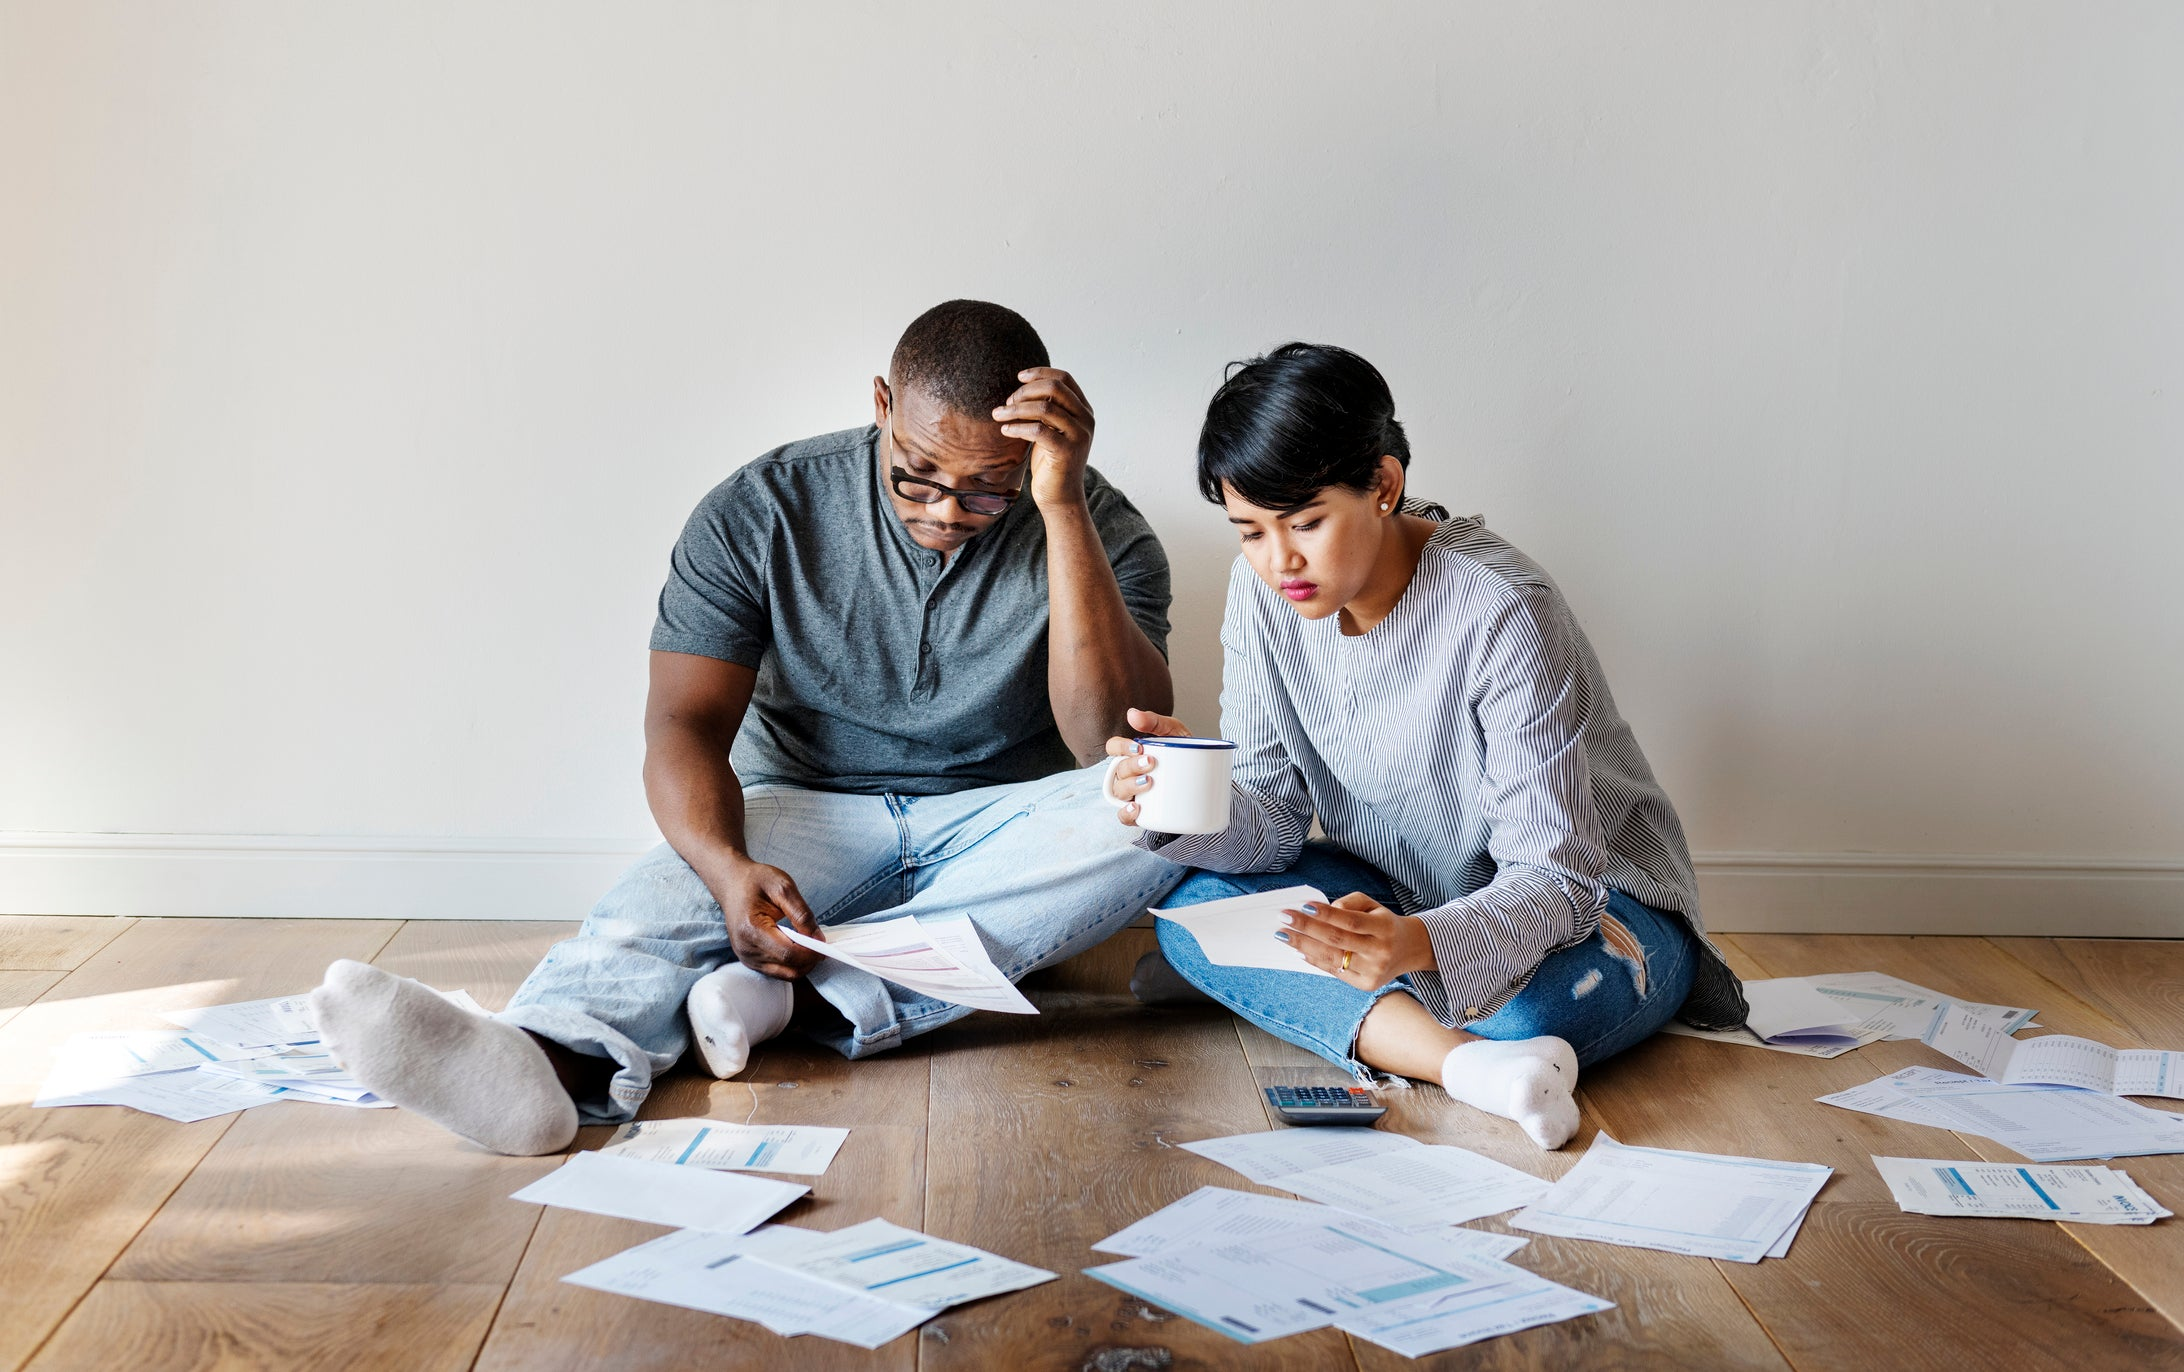 couple is dealing with their finances and the effect on relationship